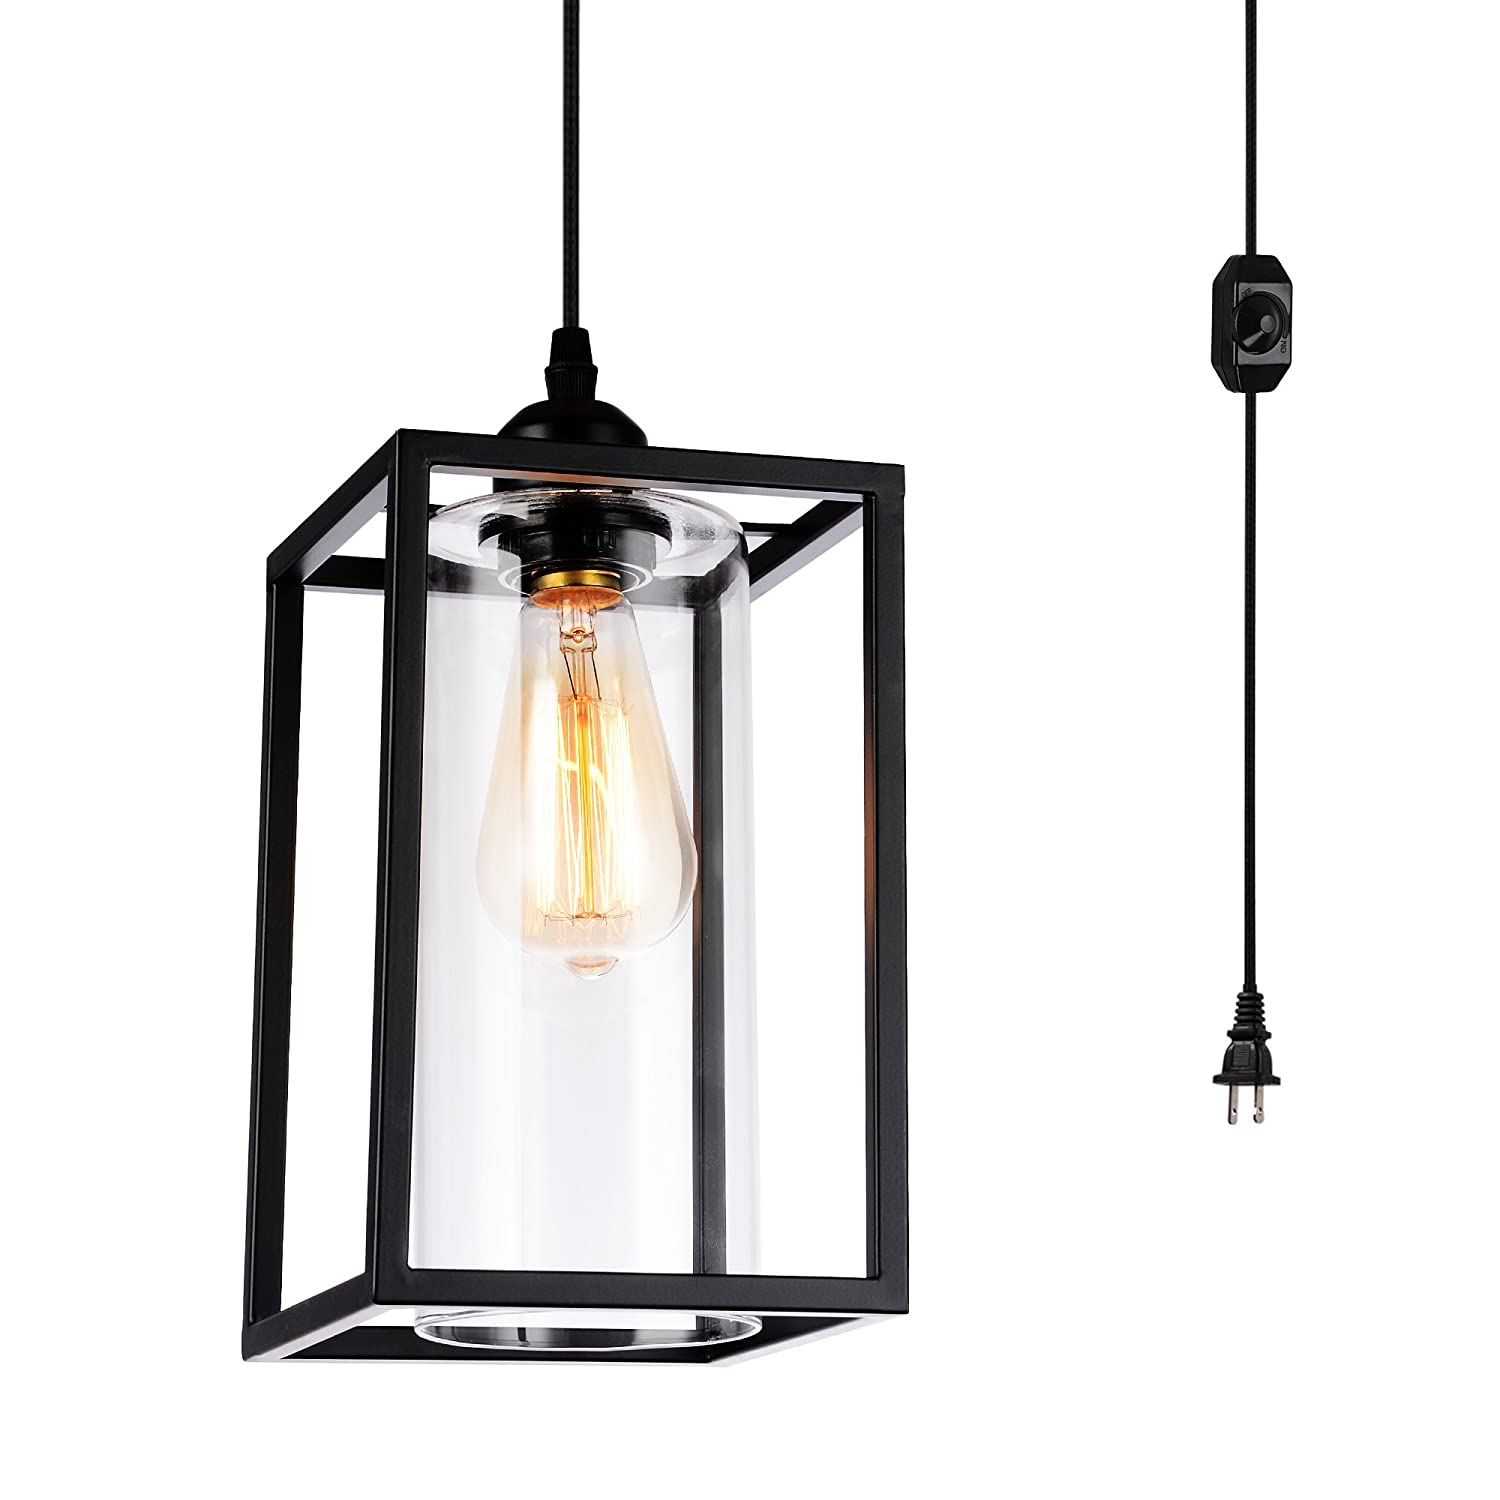 Hmvpl plug in pendant lighting fixtures with long hanging cord and dimmer switch vintage metal hanging chandelier swag ceiling lamp with glass shade